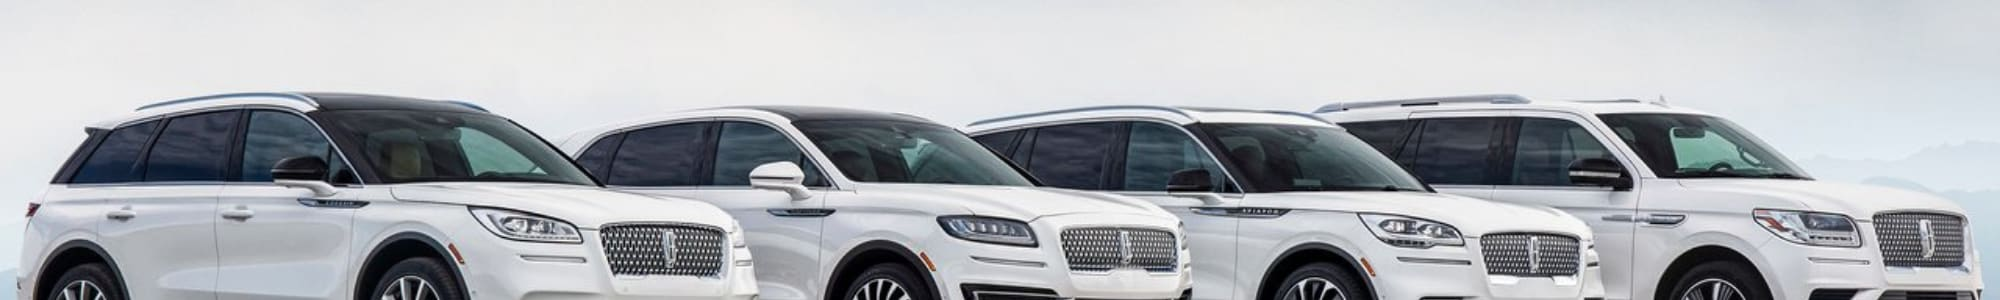 2020 Lincoln Model Lineup in Colorado Springs